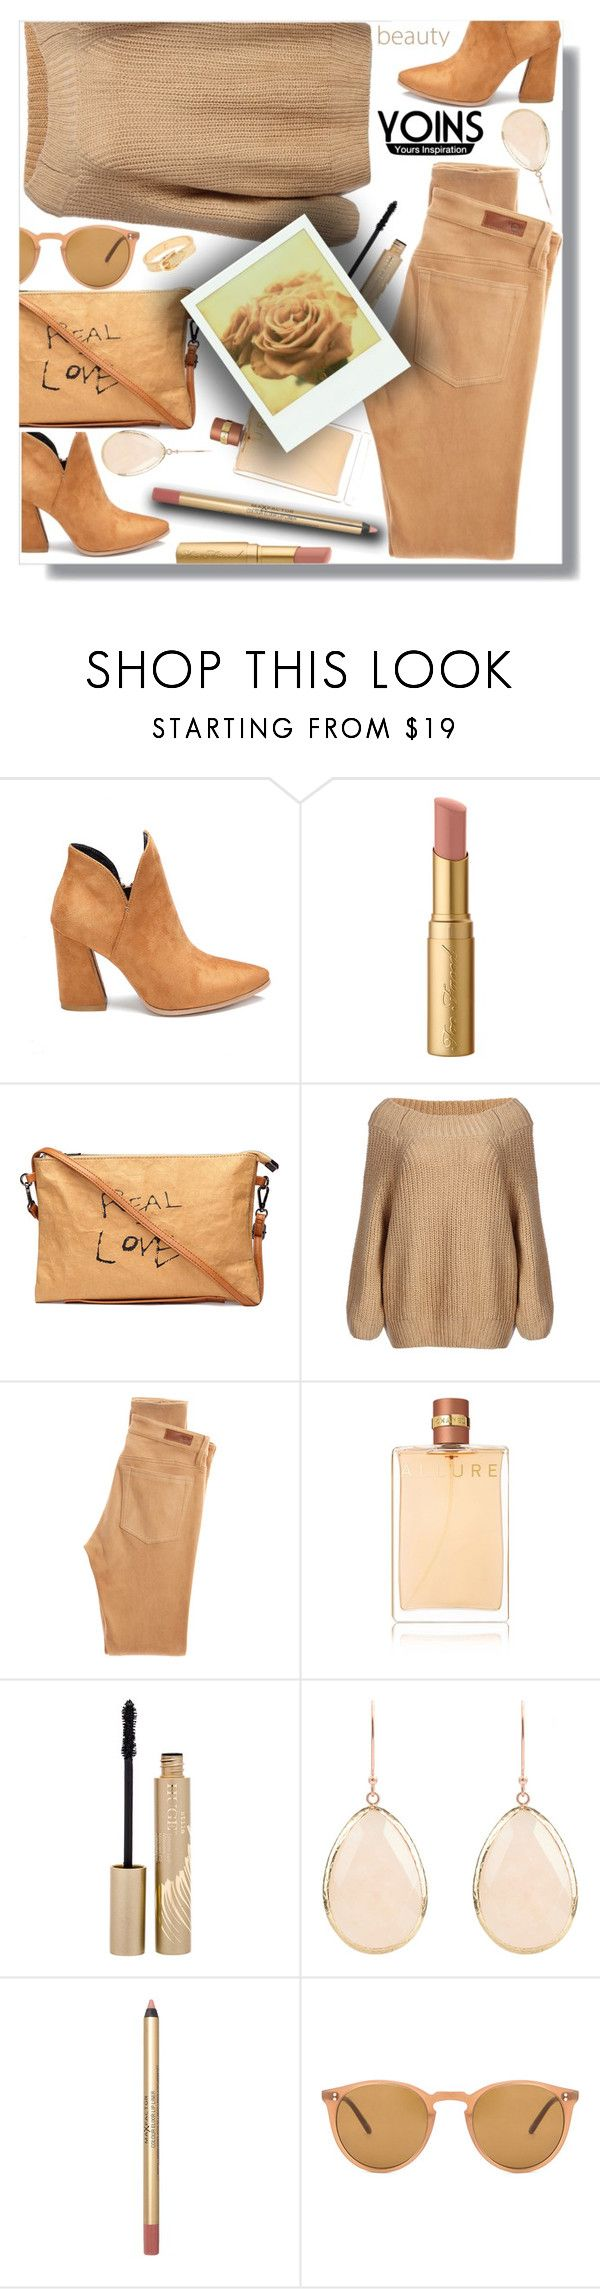 """""""YOINS #30"""" by sarahguo ❤ liked on Polyvore featuring Too Faced Cosmetics, AG Adriano Goldschmied, Chanel, Stila, Polaroid, Oliver Peoples, yoins, yoinscollection and loveyoins"""